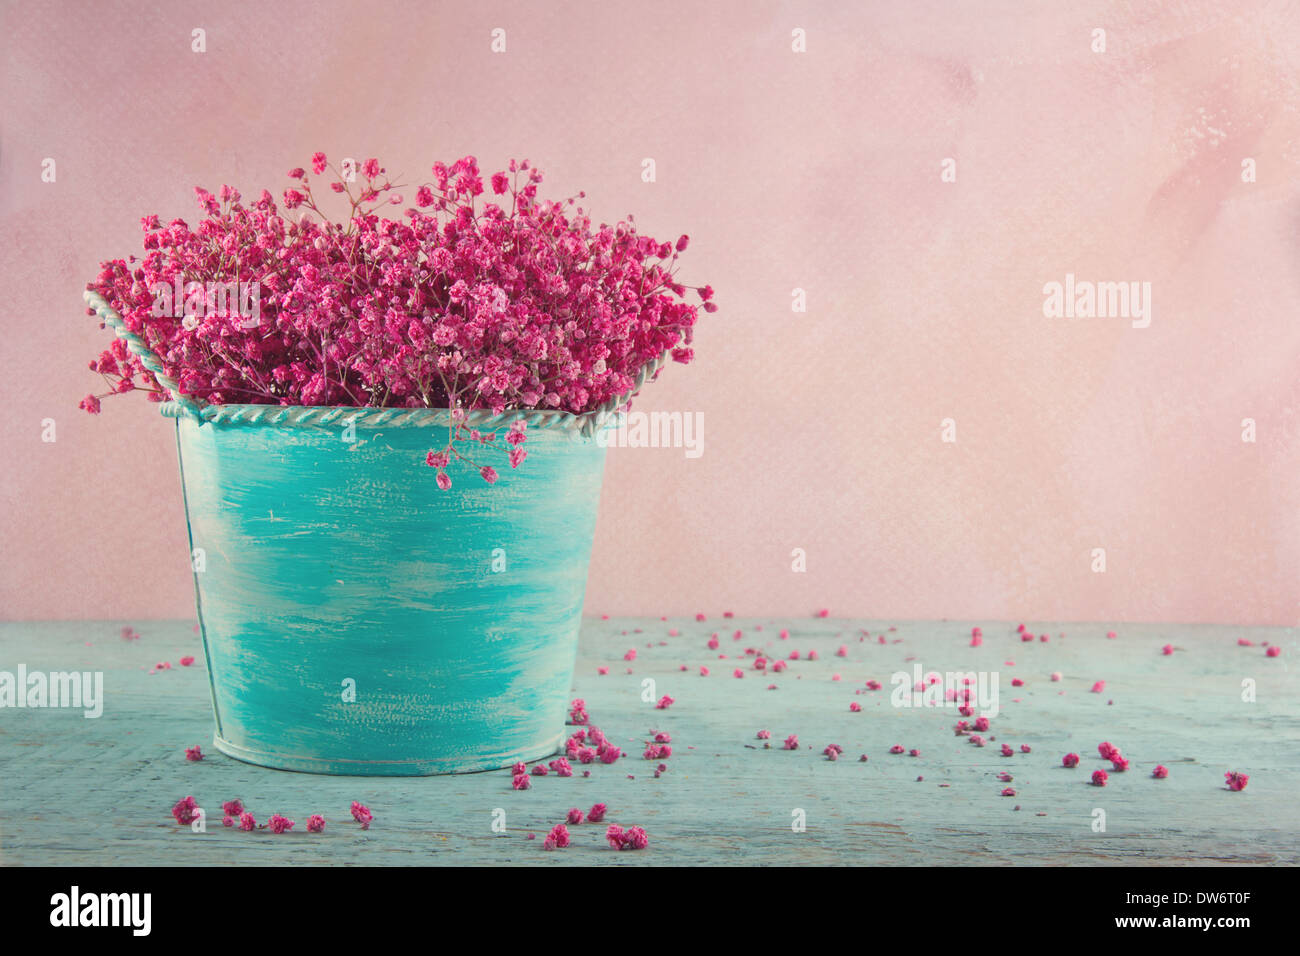 Pink dried babys breath flowers in a blue vase on wooden vintage pink dried babys breath flowers in a blue vase on wooden vintage background mightylinksfo